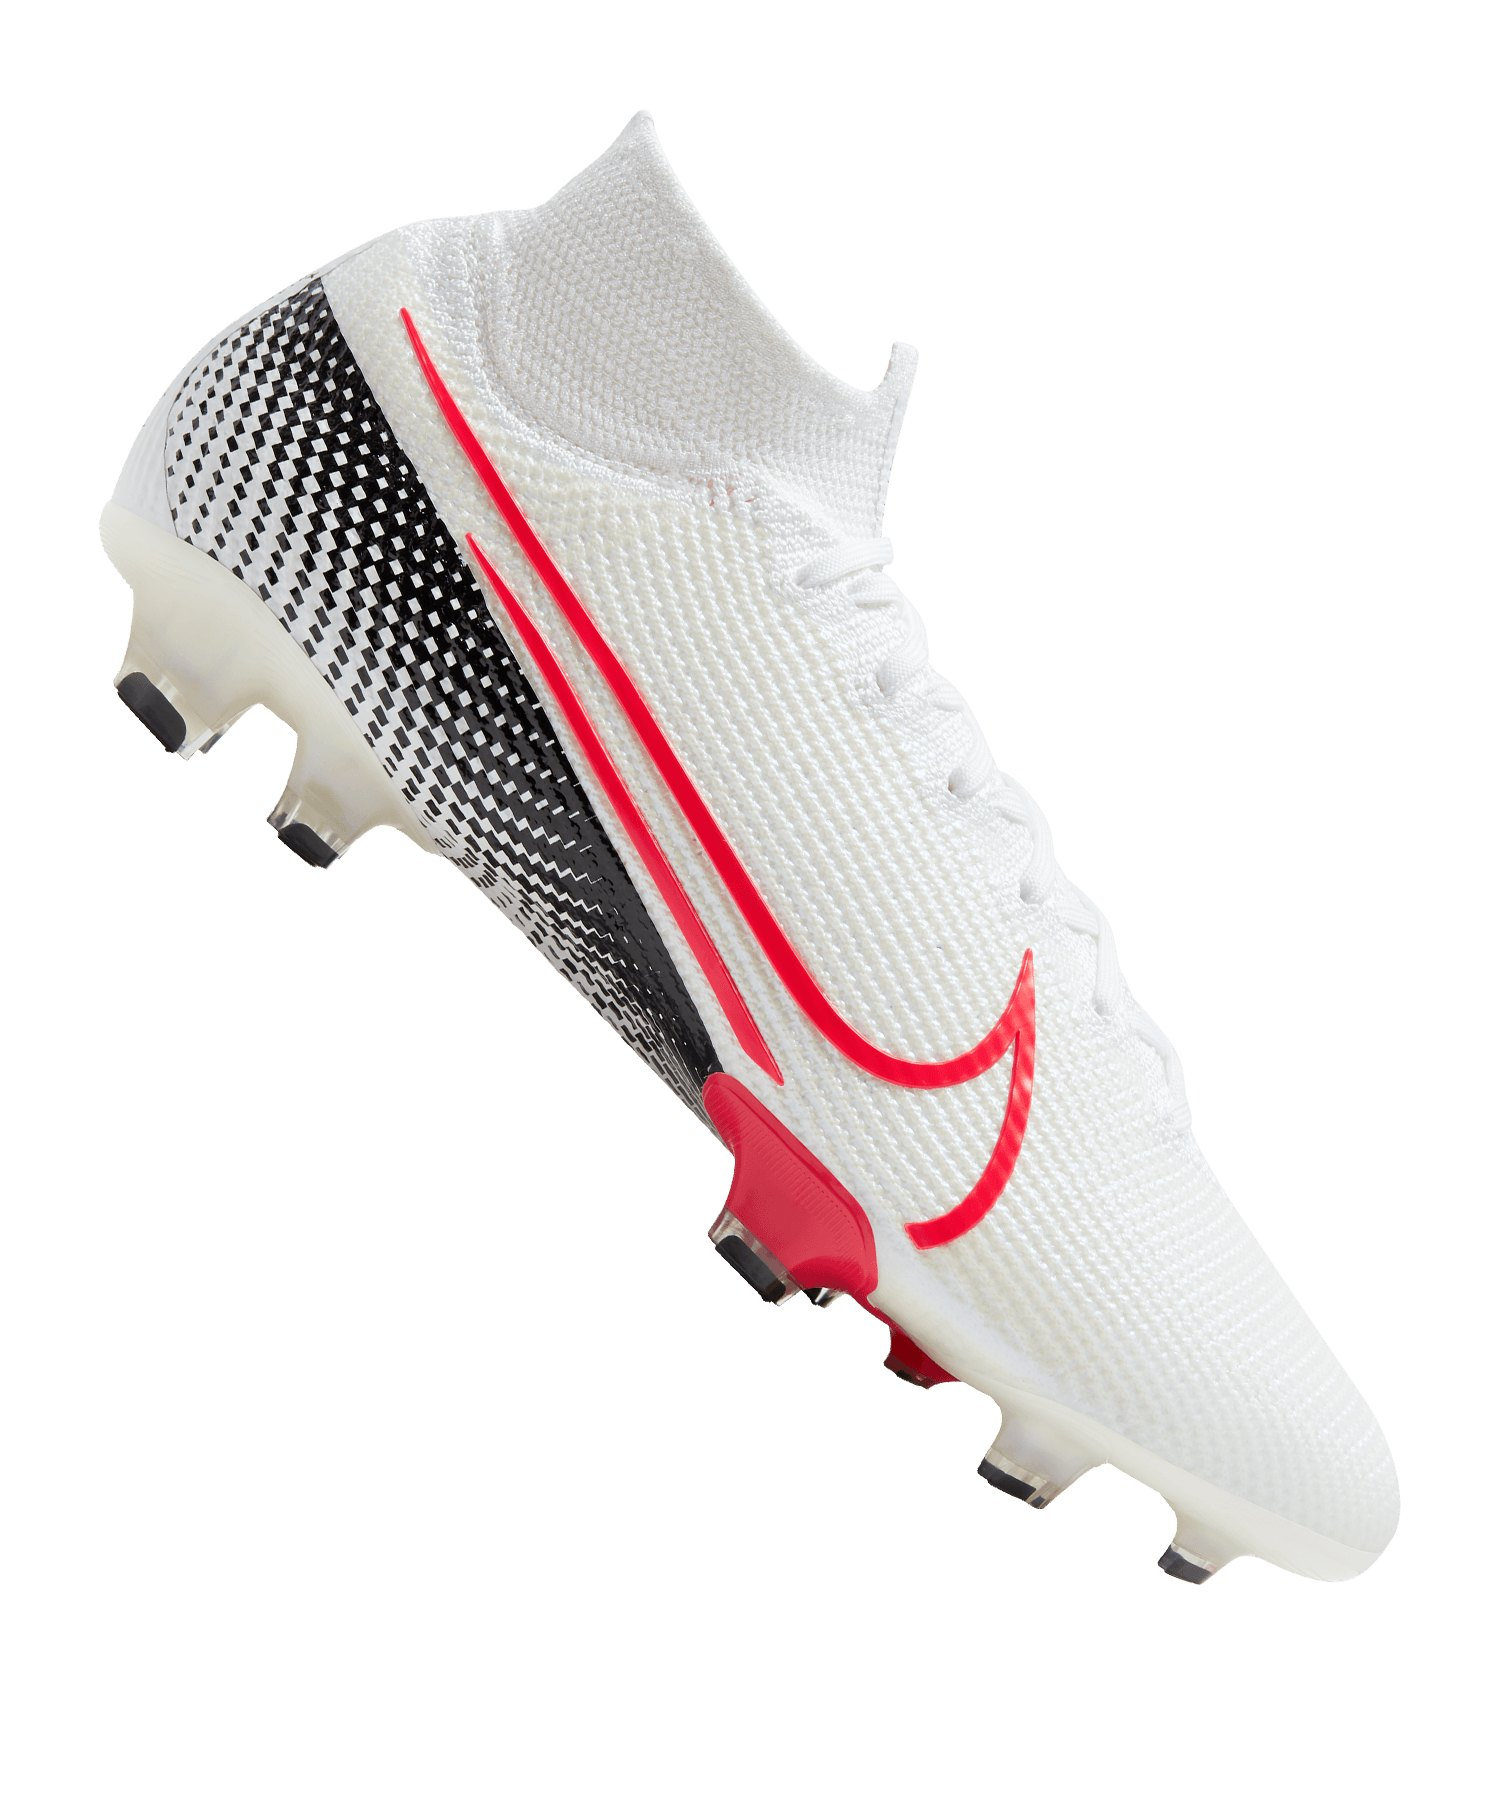 Nike Mercurial Superfly VII Future Lab II Elite FG Weiss F160 - weiss